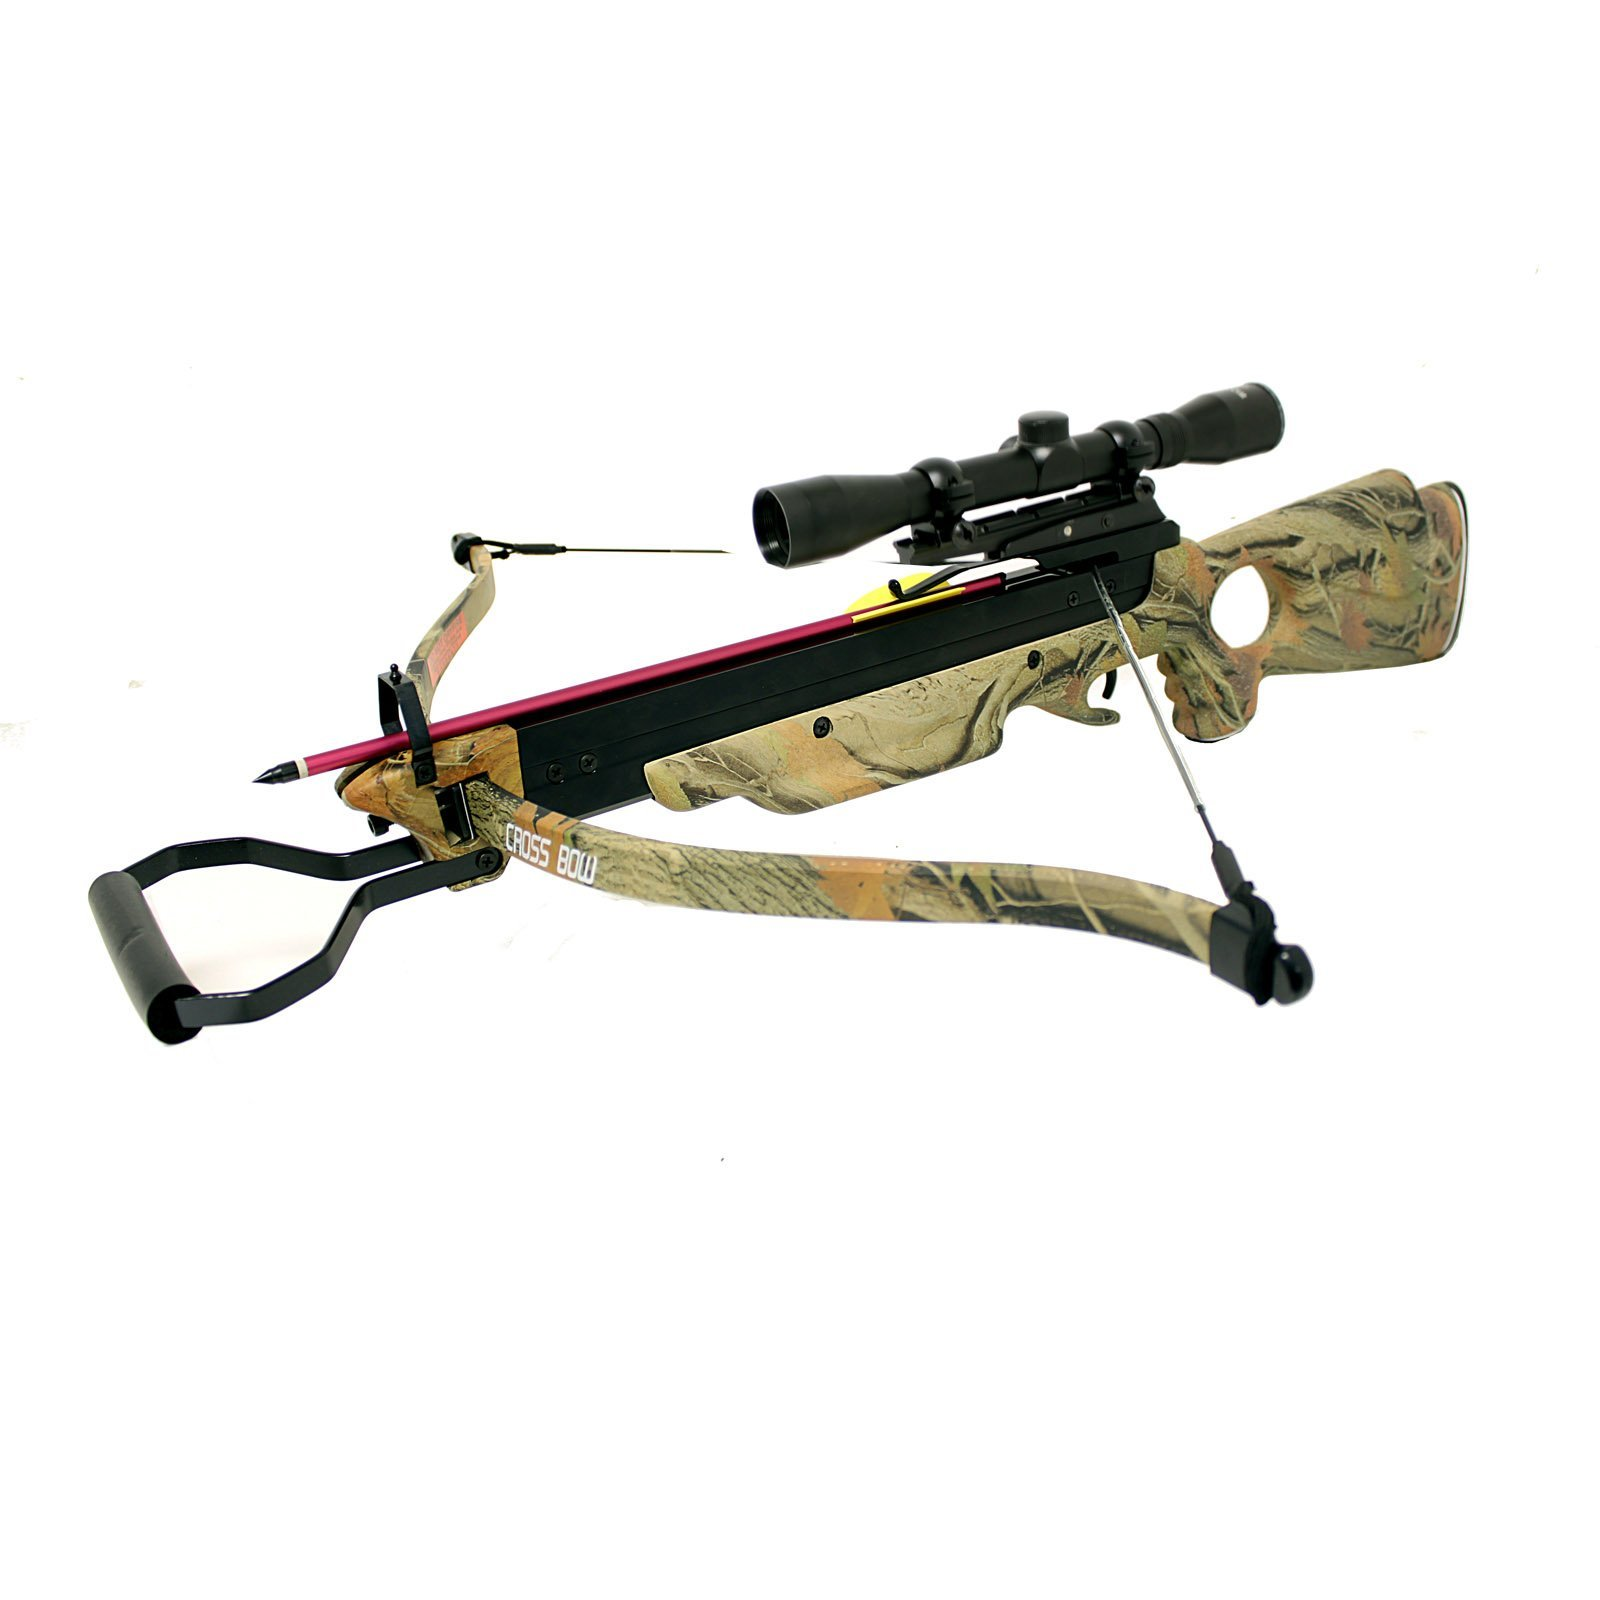 150 Lbs Wizard Camouflage Autumn Green Hunting Crossbow 4x32 Scope Package